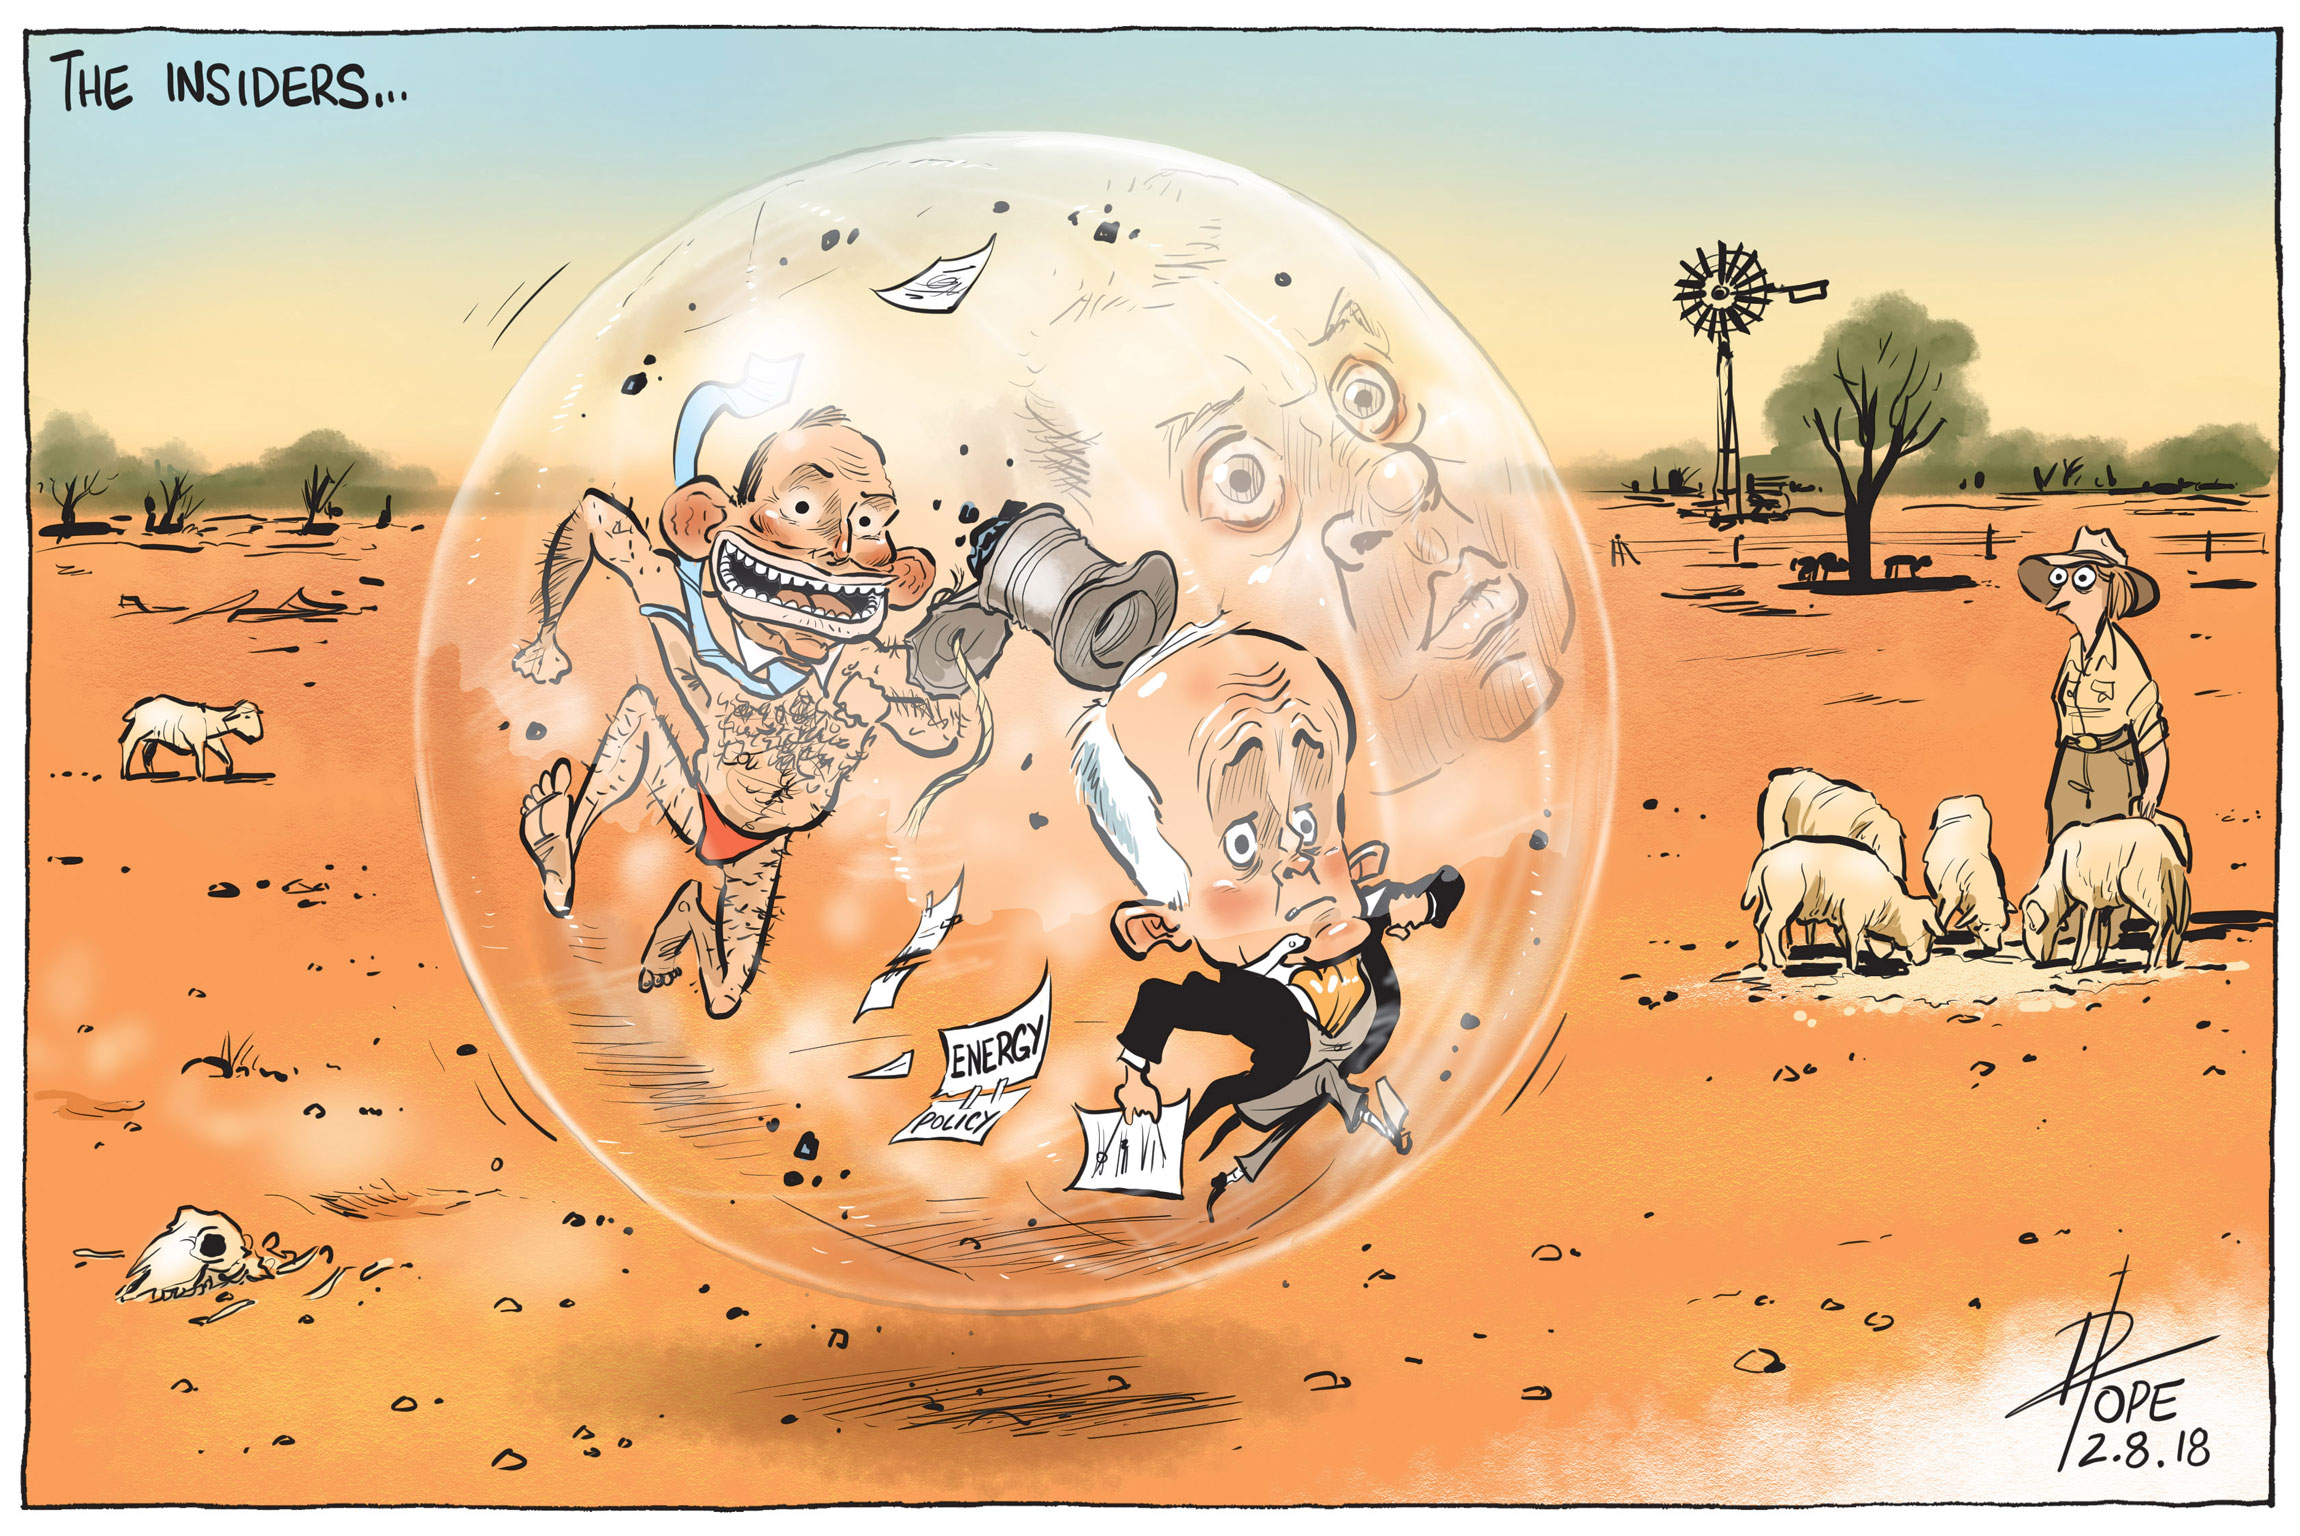 political cartoon The Insiders by David Pope